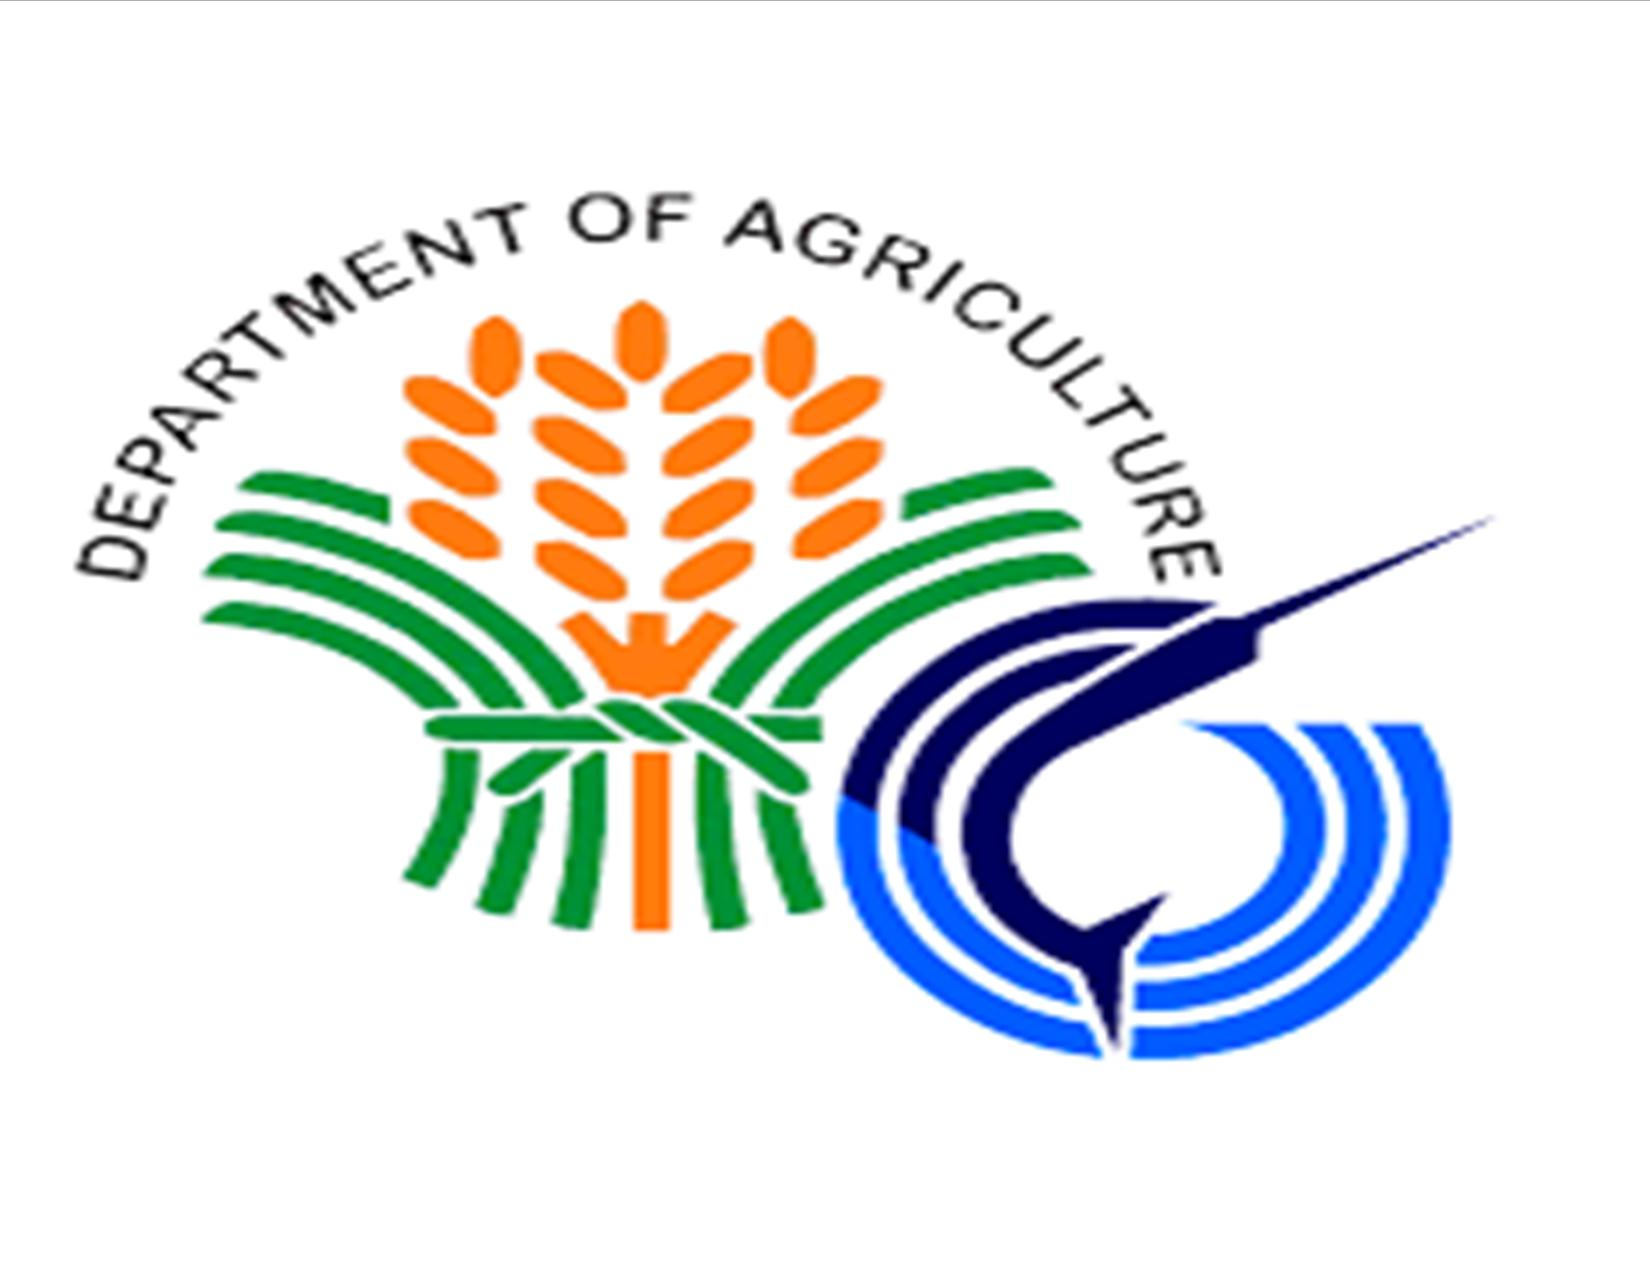 bureau of fisheries and aquatic resources-department of agriculture